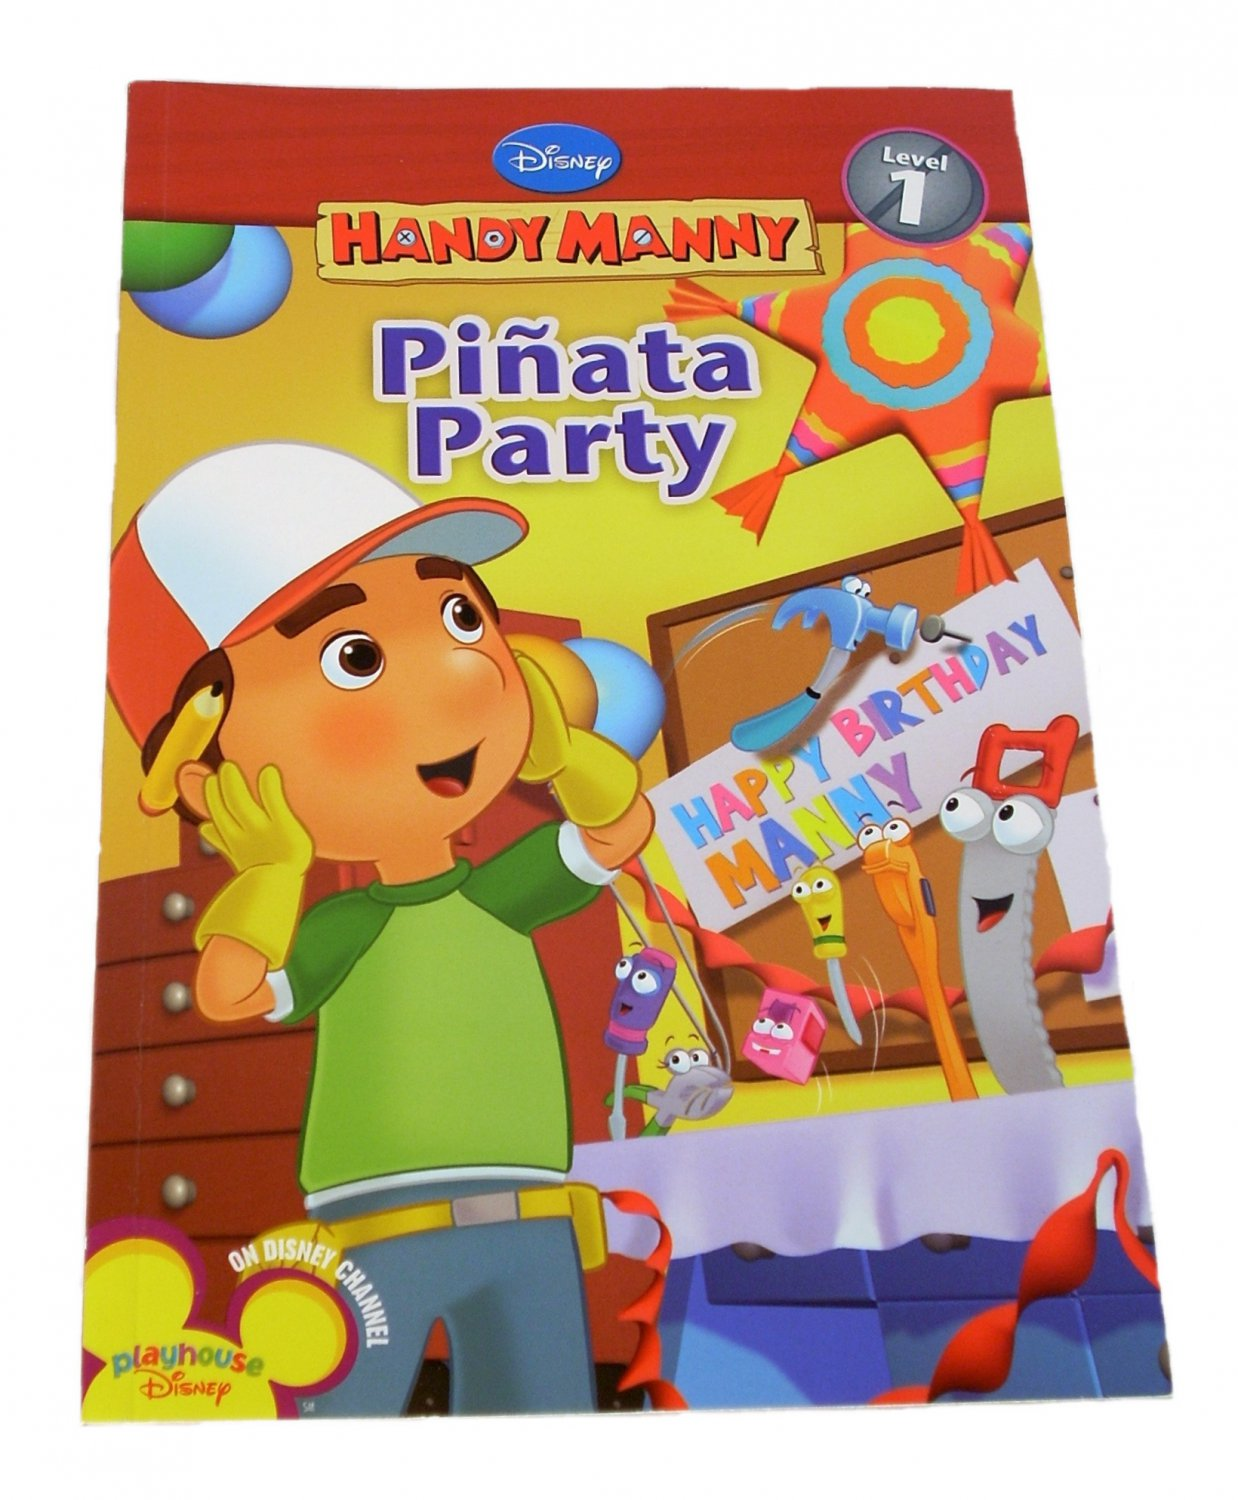 Disney's Handy Manny Pinata Party by Susan Ring Paperback 2008